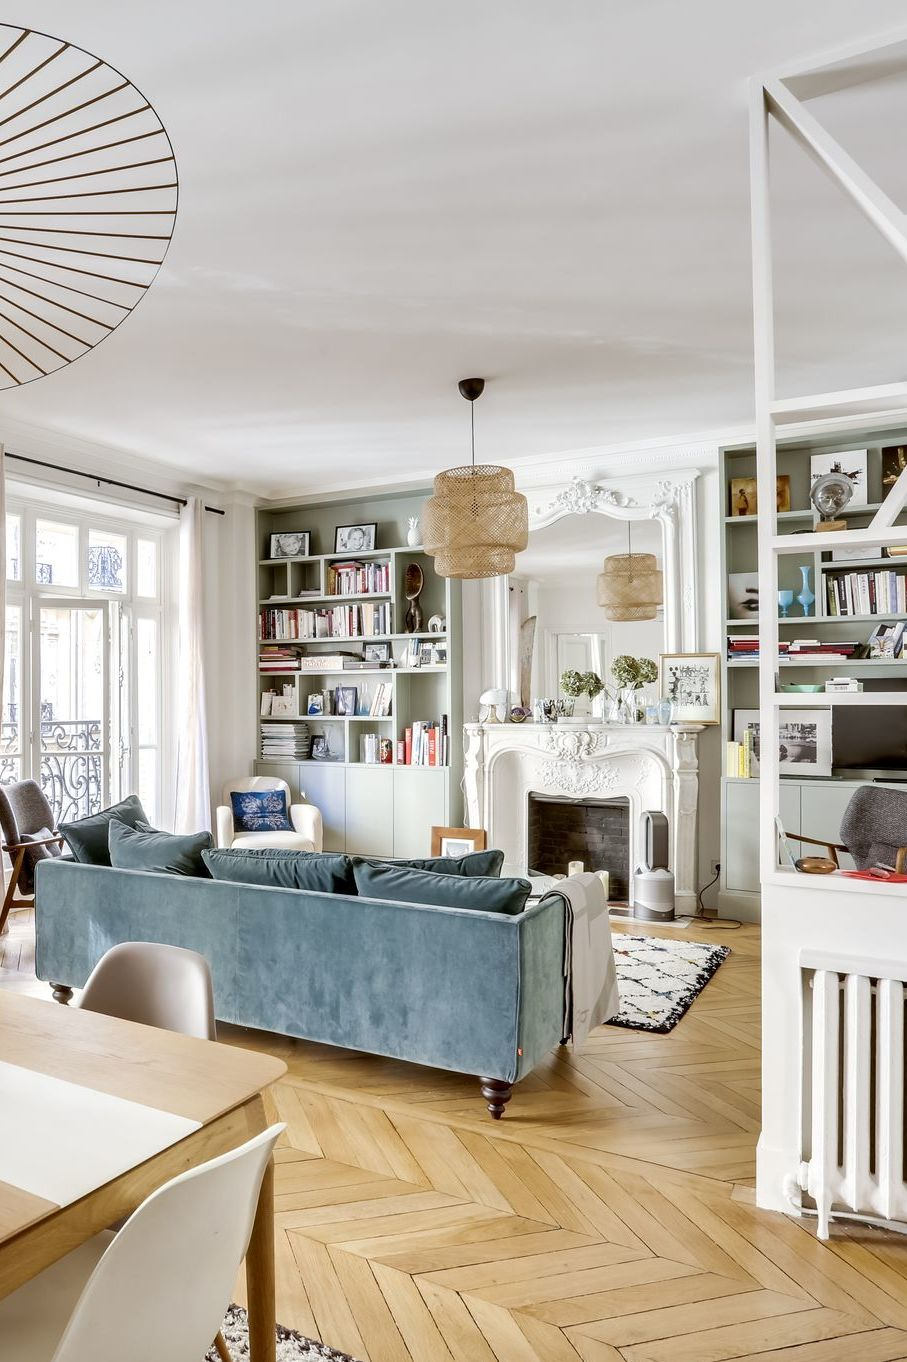 The Parisian Apartment Decor Guide For Americans